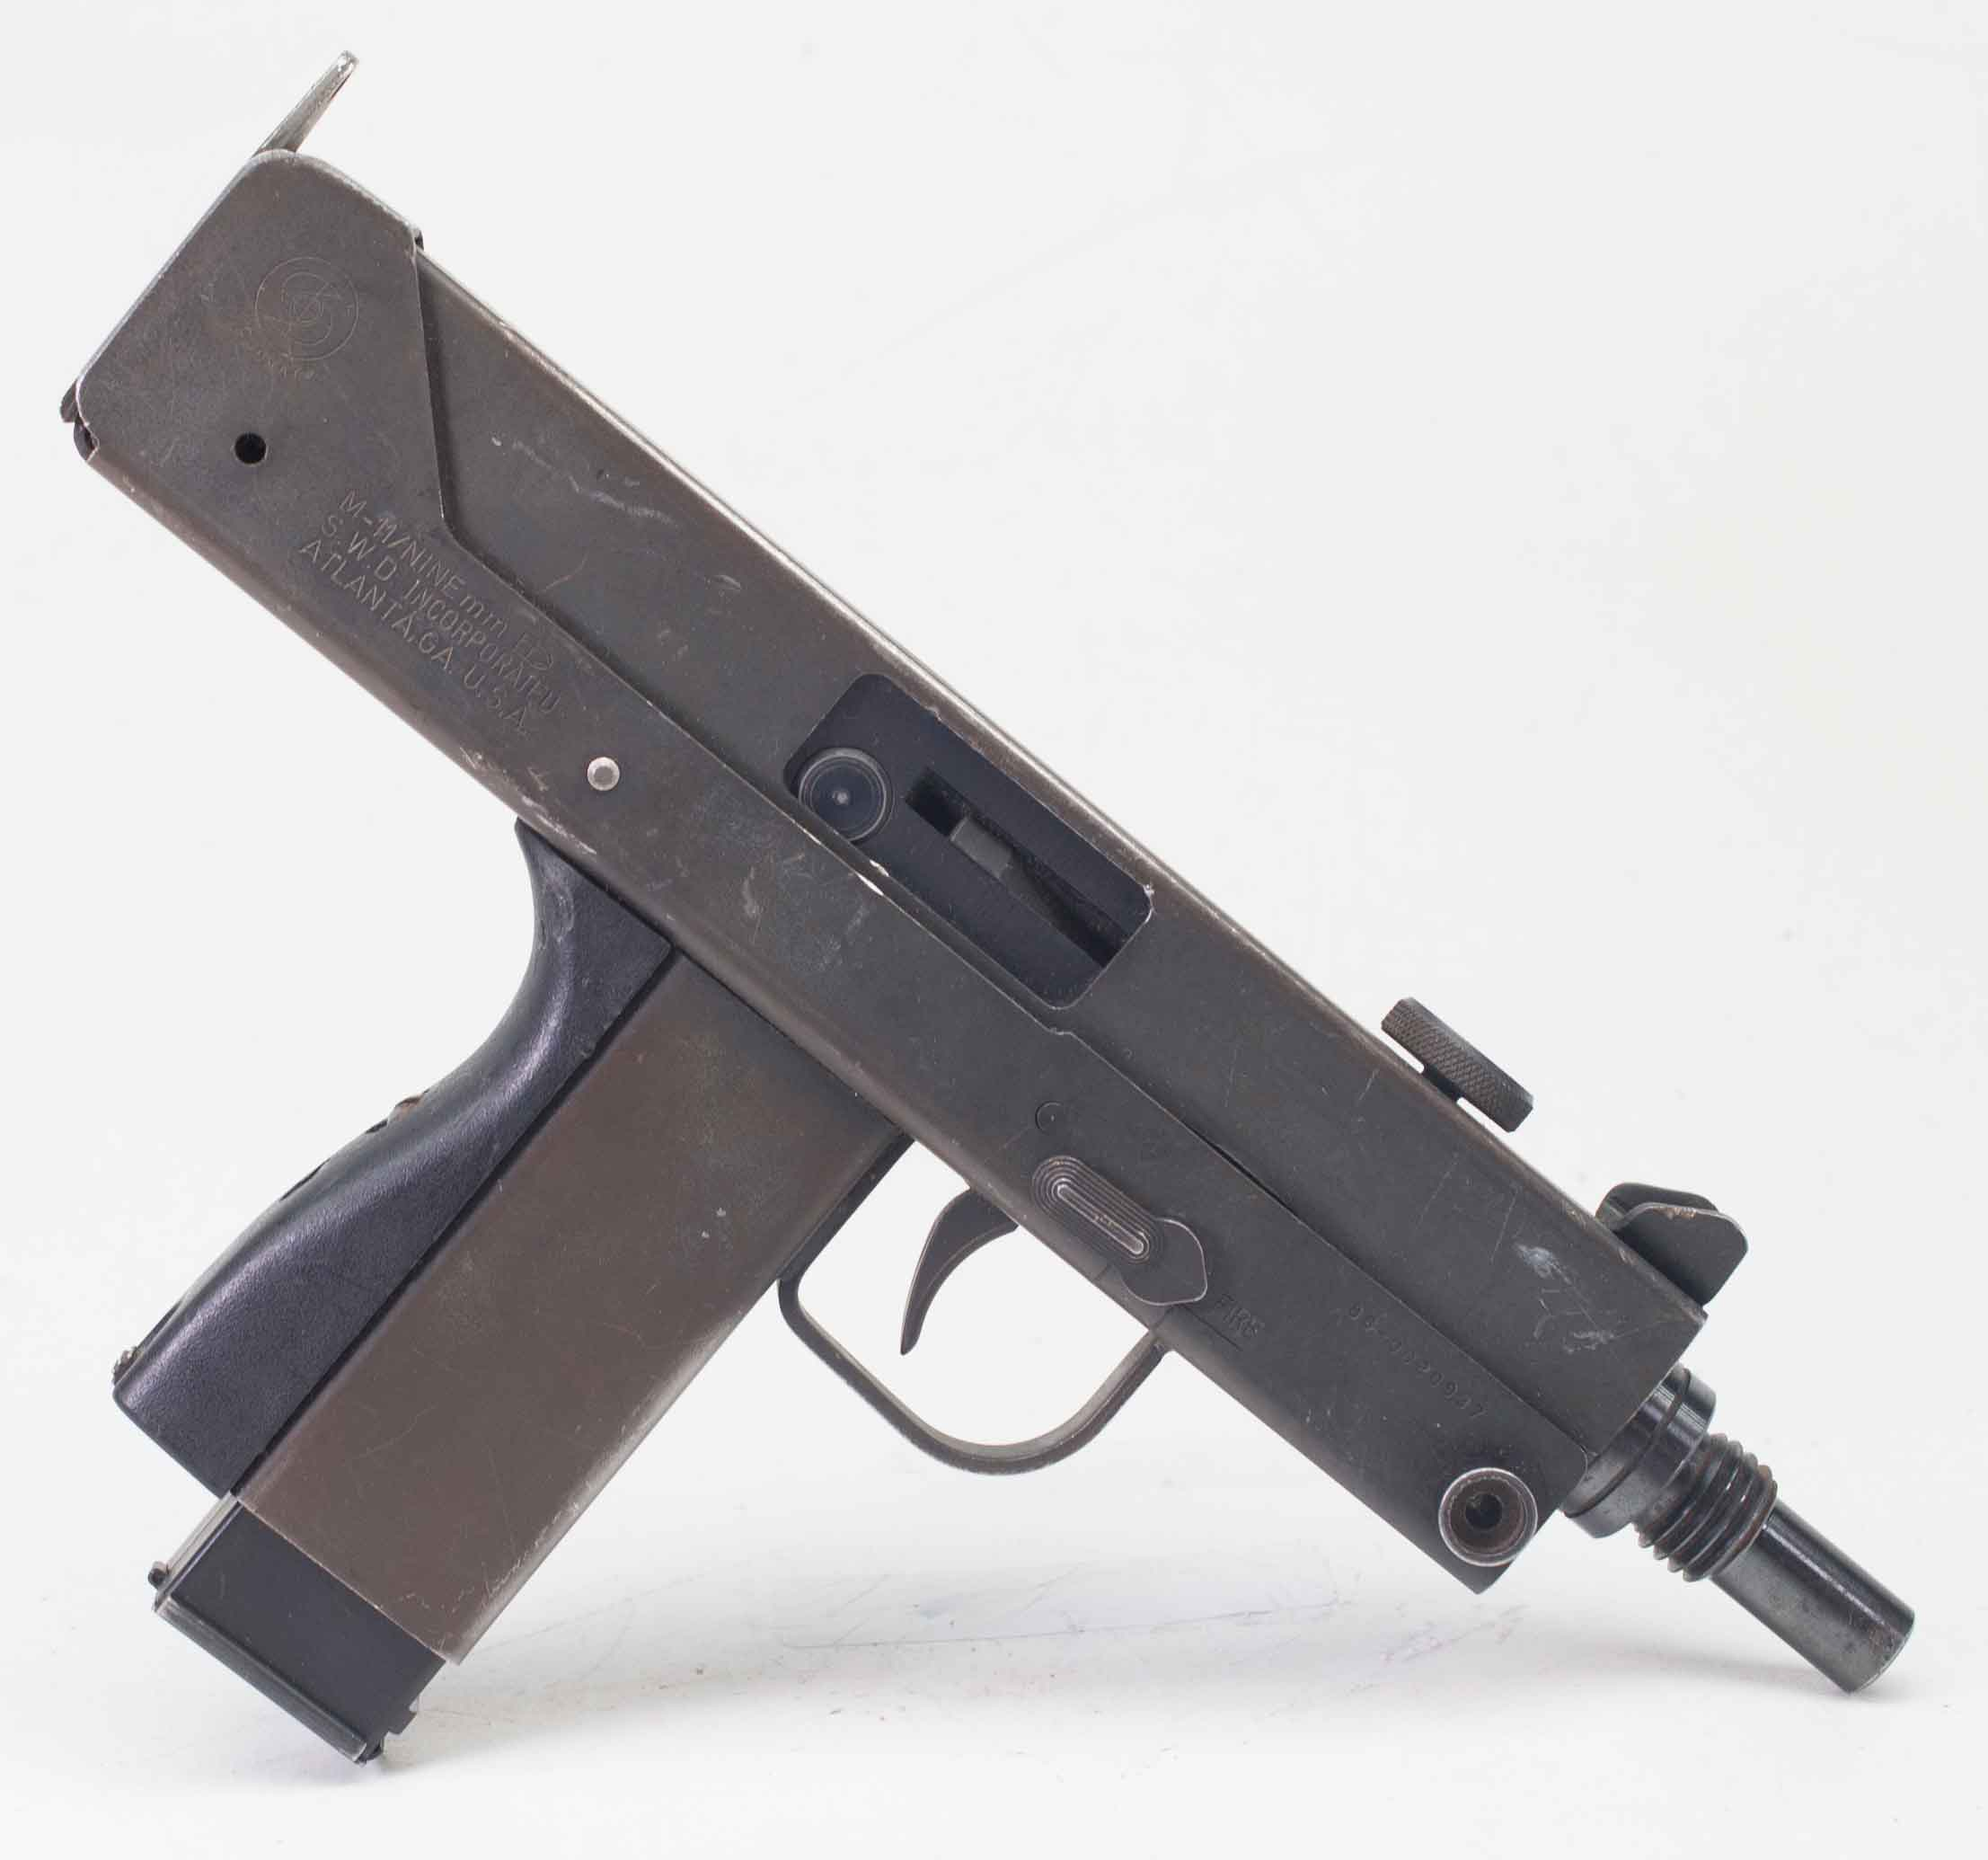 COBRAY M11 9MM (Auction ID: 11358950, End Time : May. 08